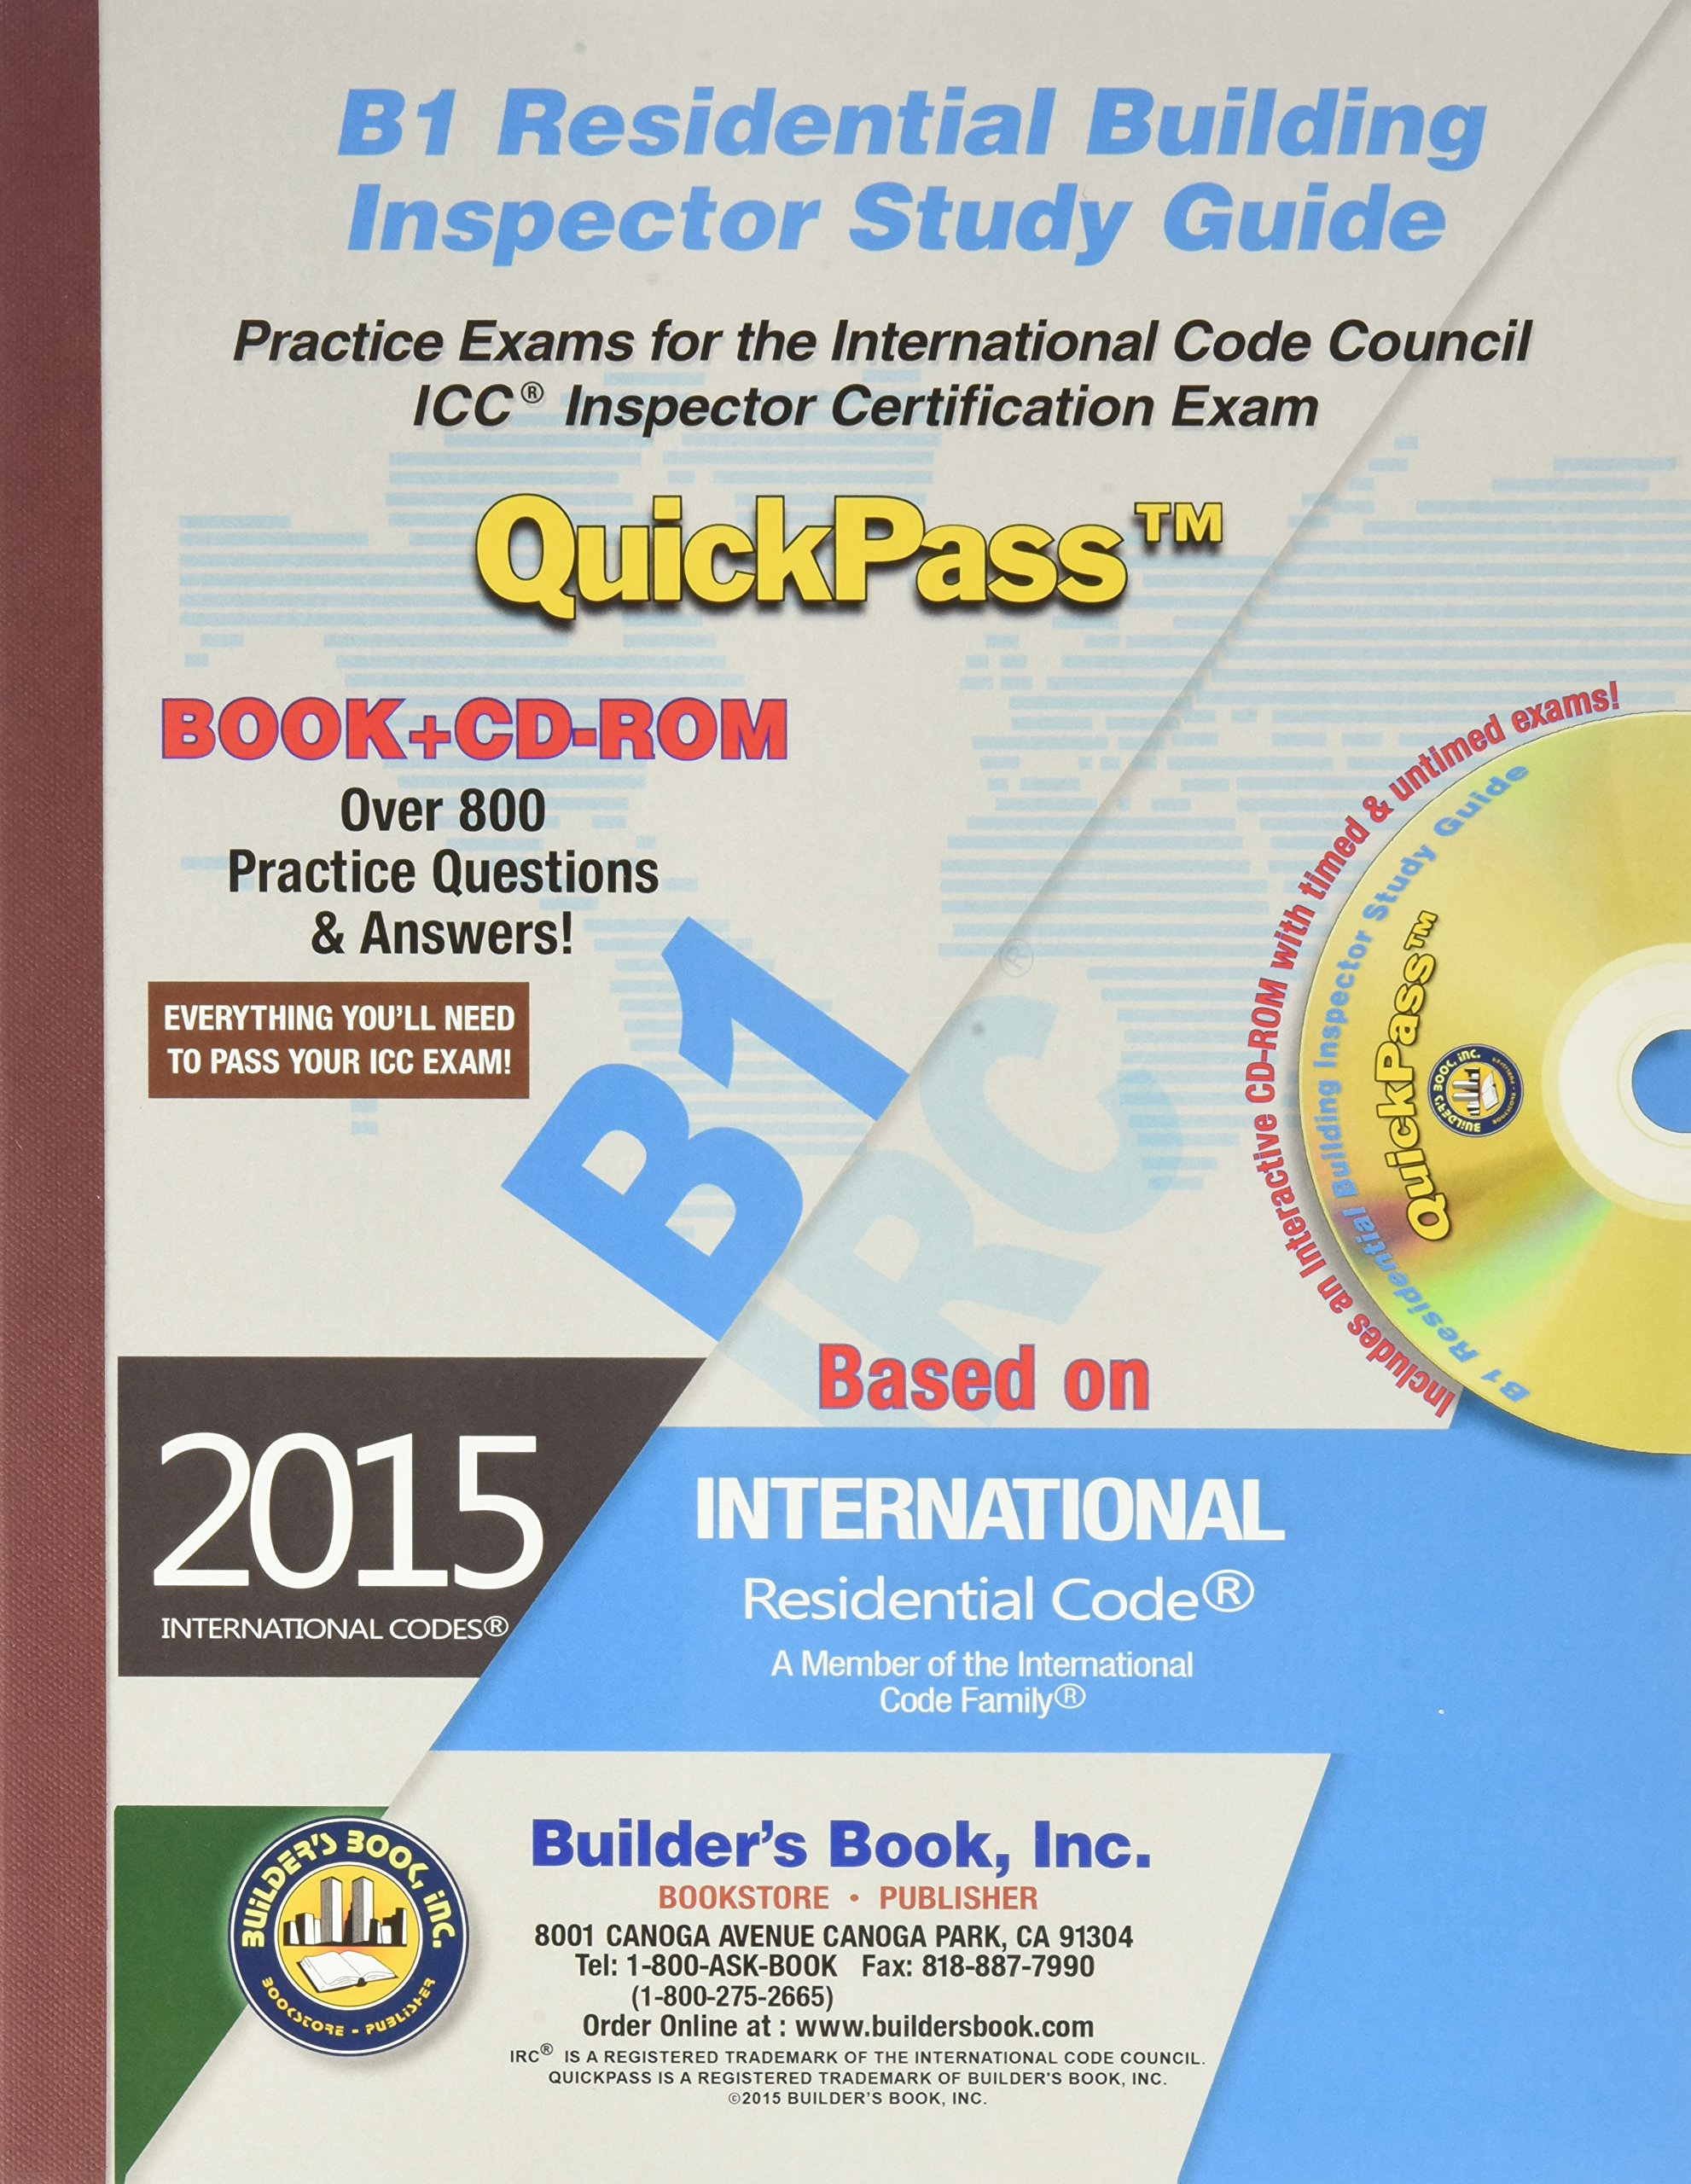 B1 Residential Building Inspector QuickPass Study Guide Based on 2015 IRC:  Builders Book Inc: 9781622701087: Amazon.com: Books